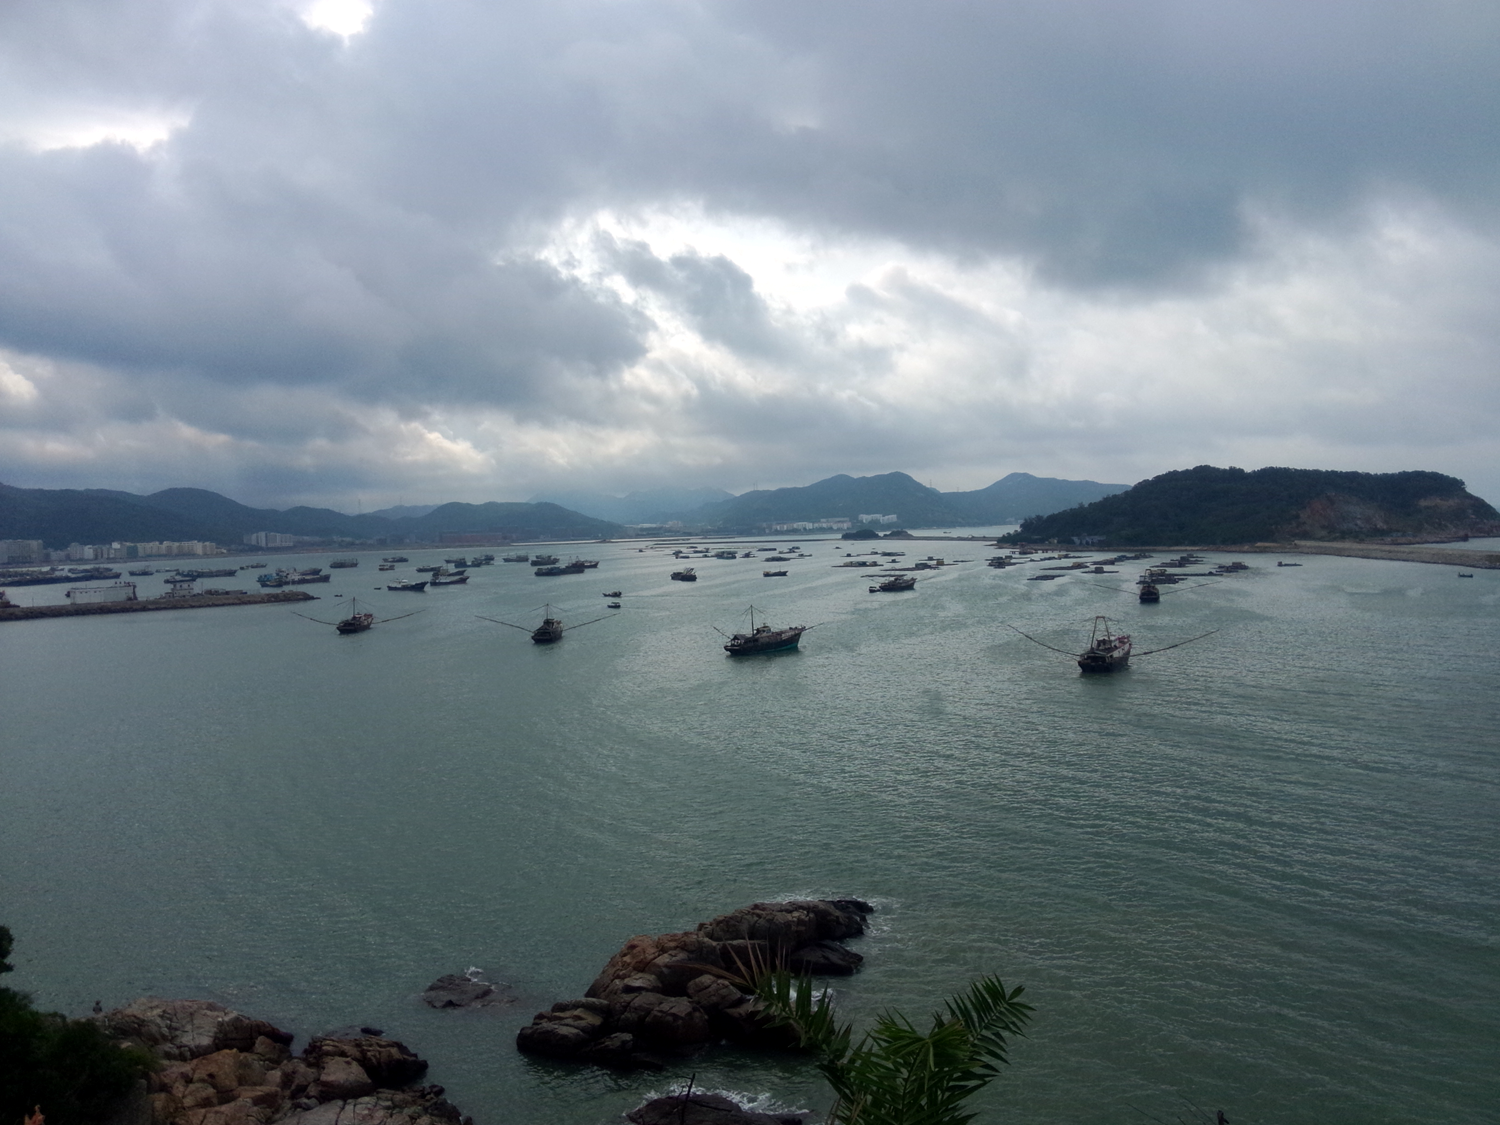 China has massive fishing ports along its long coastal bays. Here is a photo of a bay in Guangdong (Canton) where a fishing port is located. In April throughout October 2015, I visited more than 50 fishing ports to interview fishers.